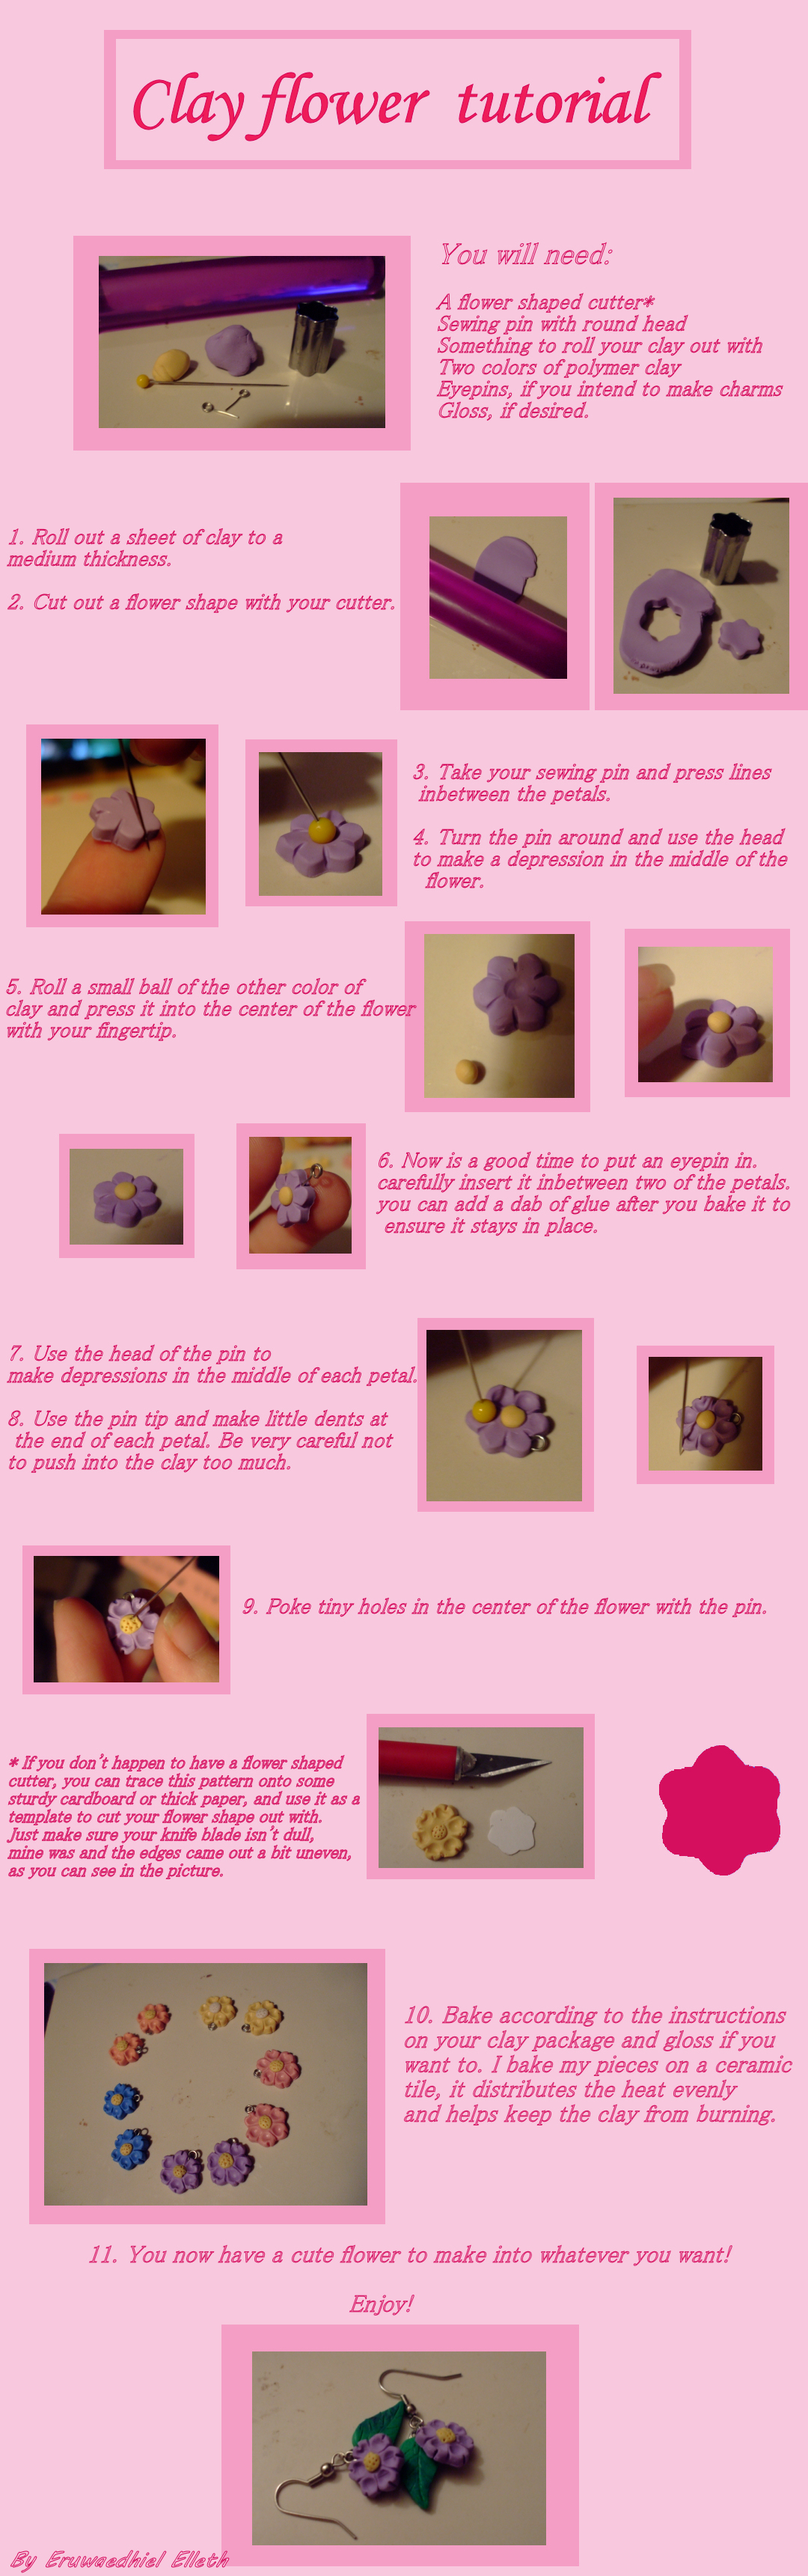 Clay flower tutorial by EruwaedhielElleth